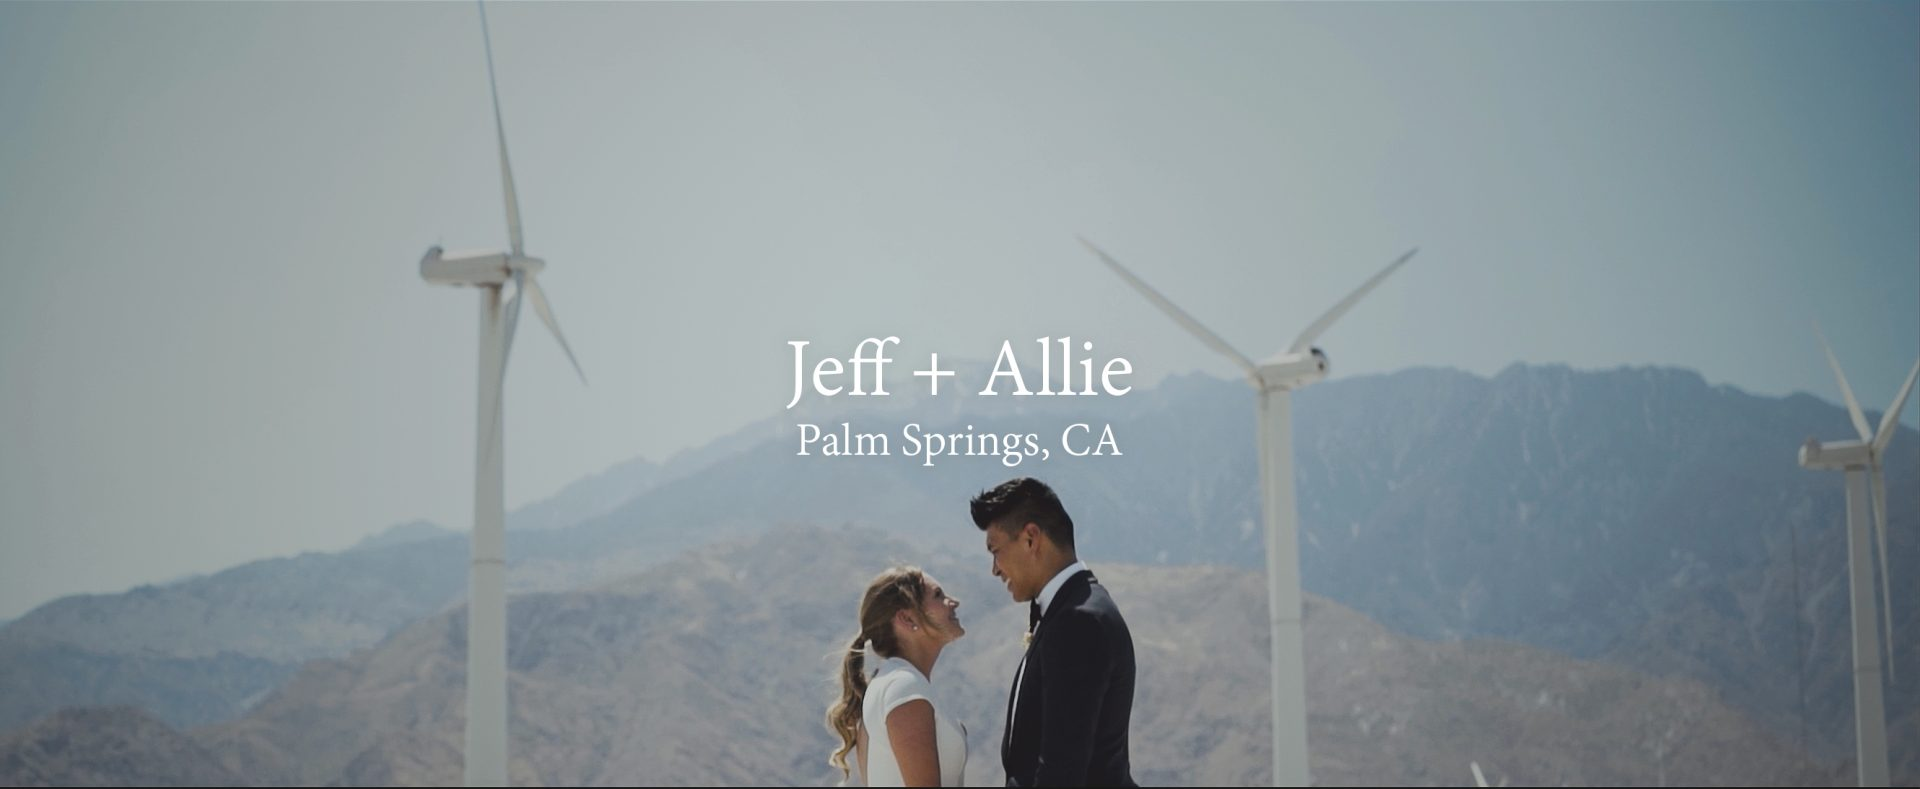 Jeff + Allie | Palm Springs, California